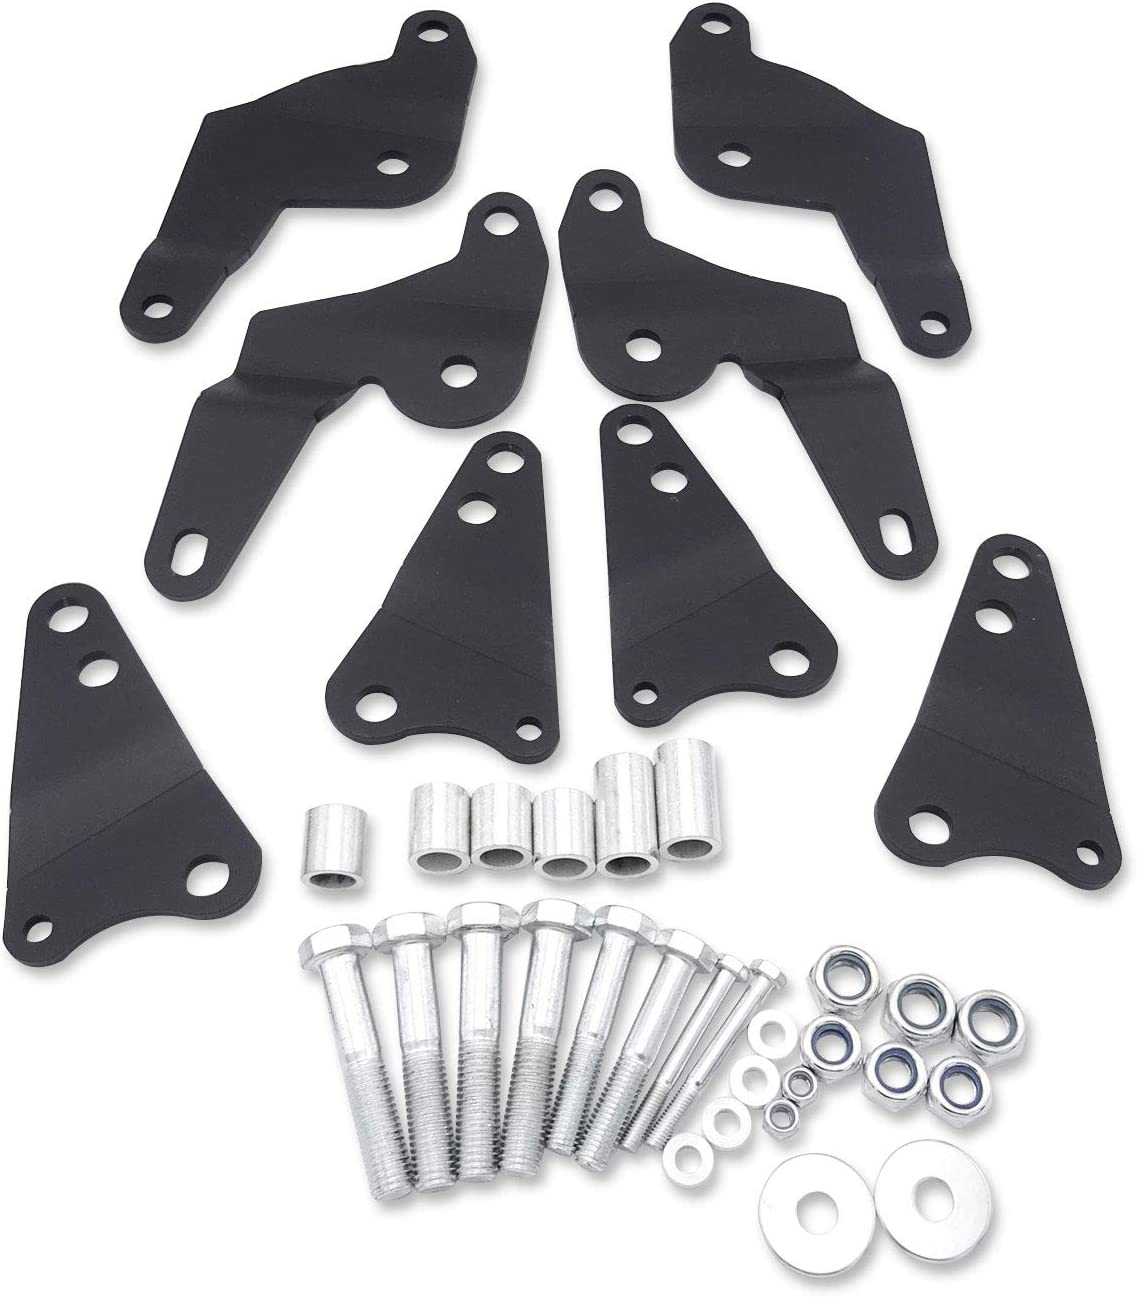 WeiSen 3 Inches Front and Rear Suspension UTV Full Lift Kit Fit 2014-2018 Can-Am Maverick 1000//1000 XXC//Max 1000